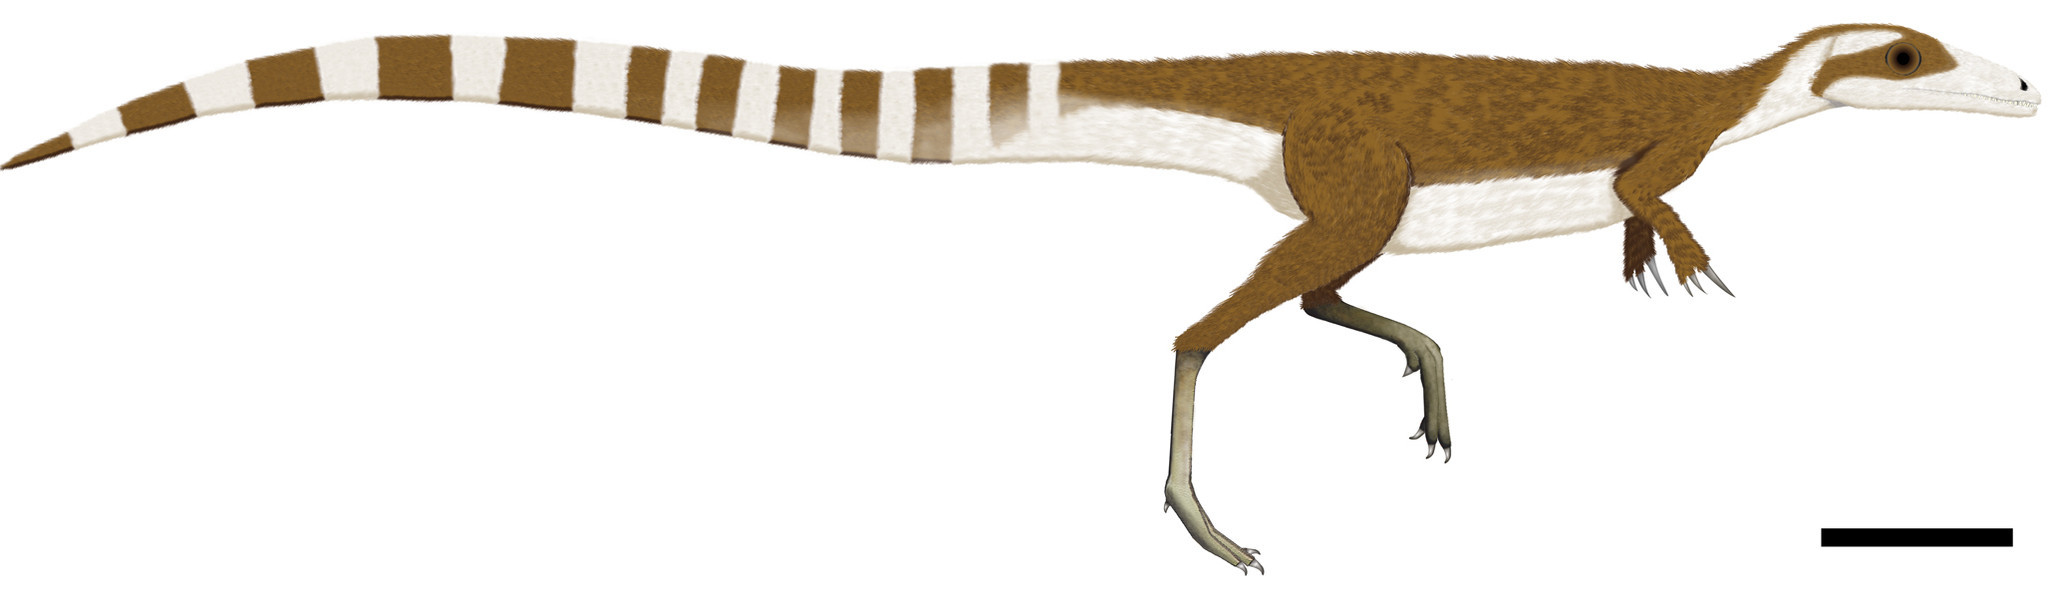 The reconstructed color patterns of Sinosauropteryx, showing its countershaded pattern along with the stripey tail and bandit mask.